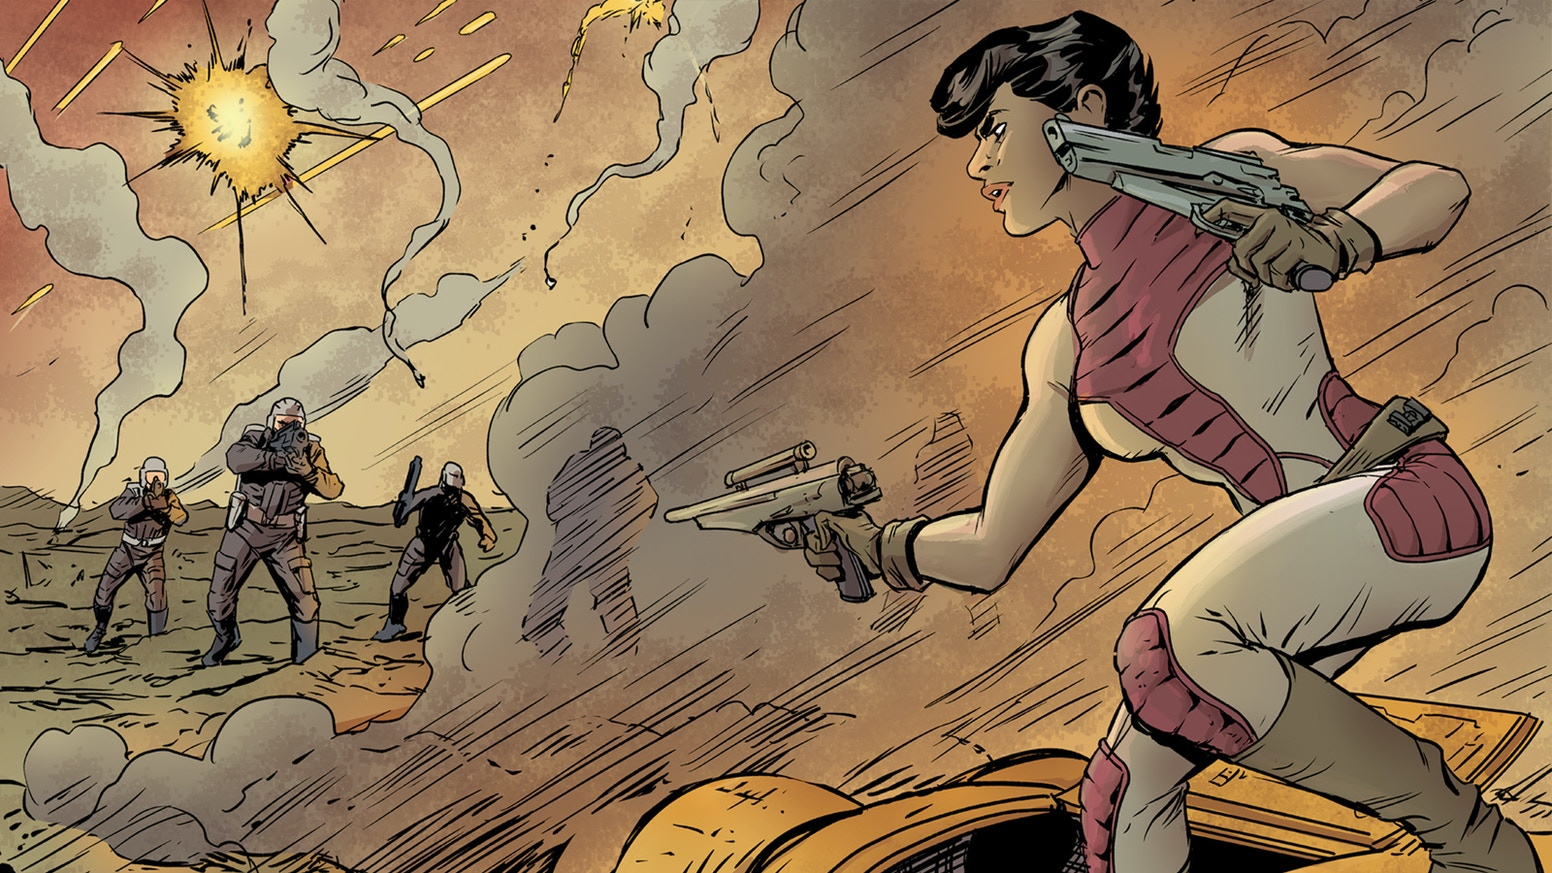 Our BATTLEFIELDS campaign was a great success. THANK YOU, BACKERS! Next campaign for TREKKER: THE COMPLETE JOURNEY Vol launches January 21, 2020! Meanwhile, catch up on earlier TREKKER books on my Etsy store: